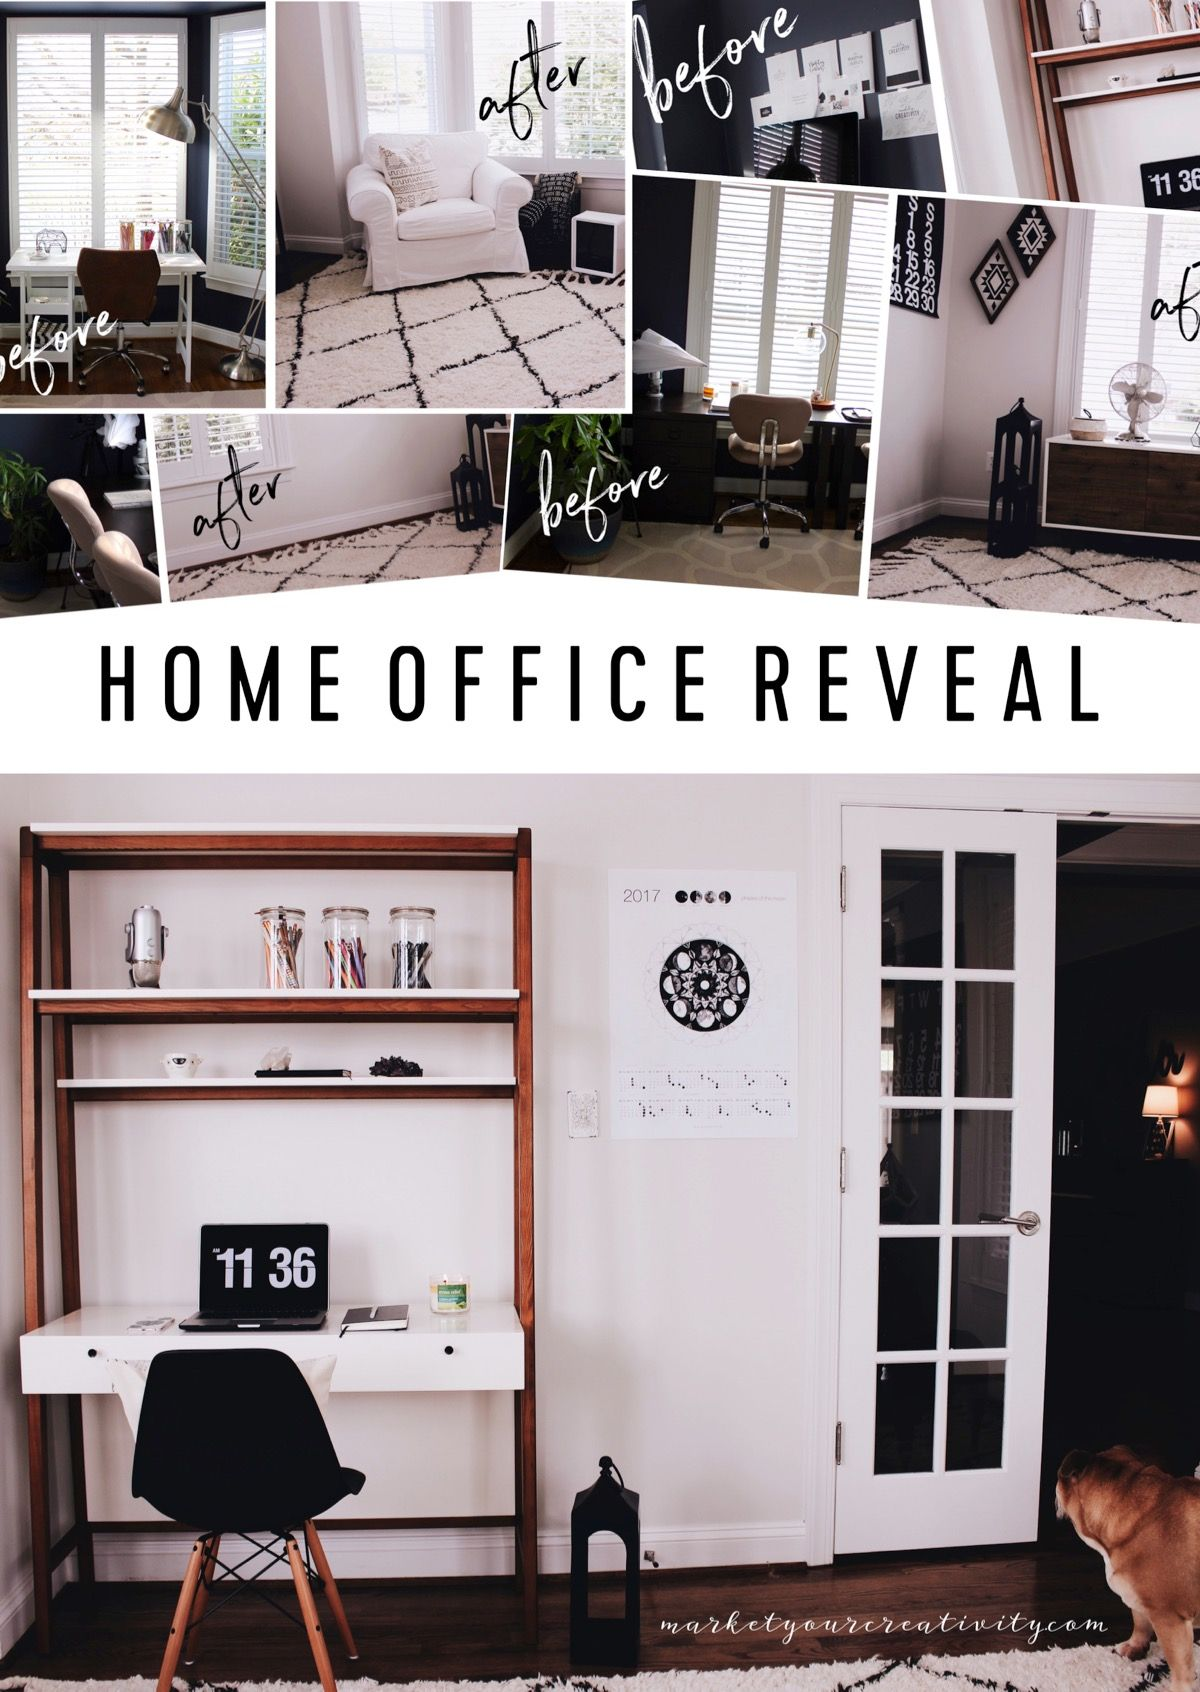 Charming Tons Of Before And After Photos Home Office Design, Creative Design